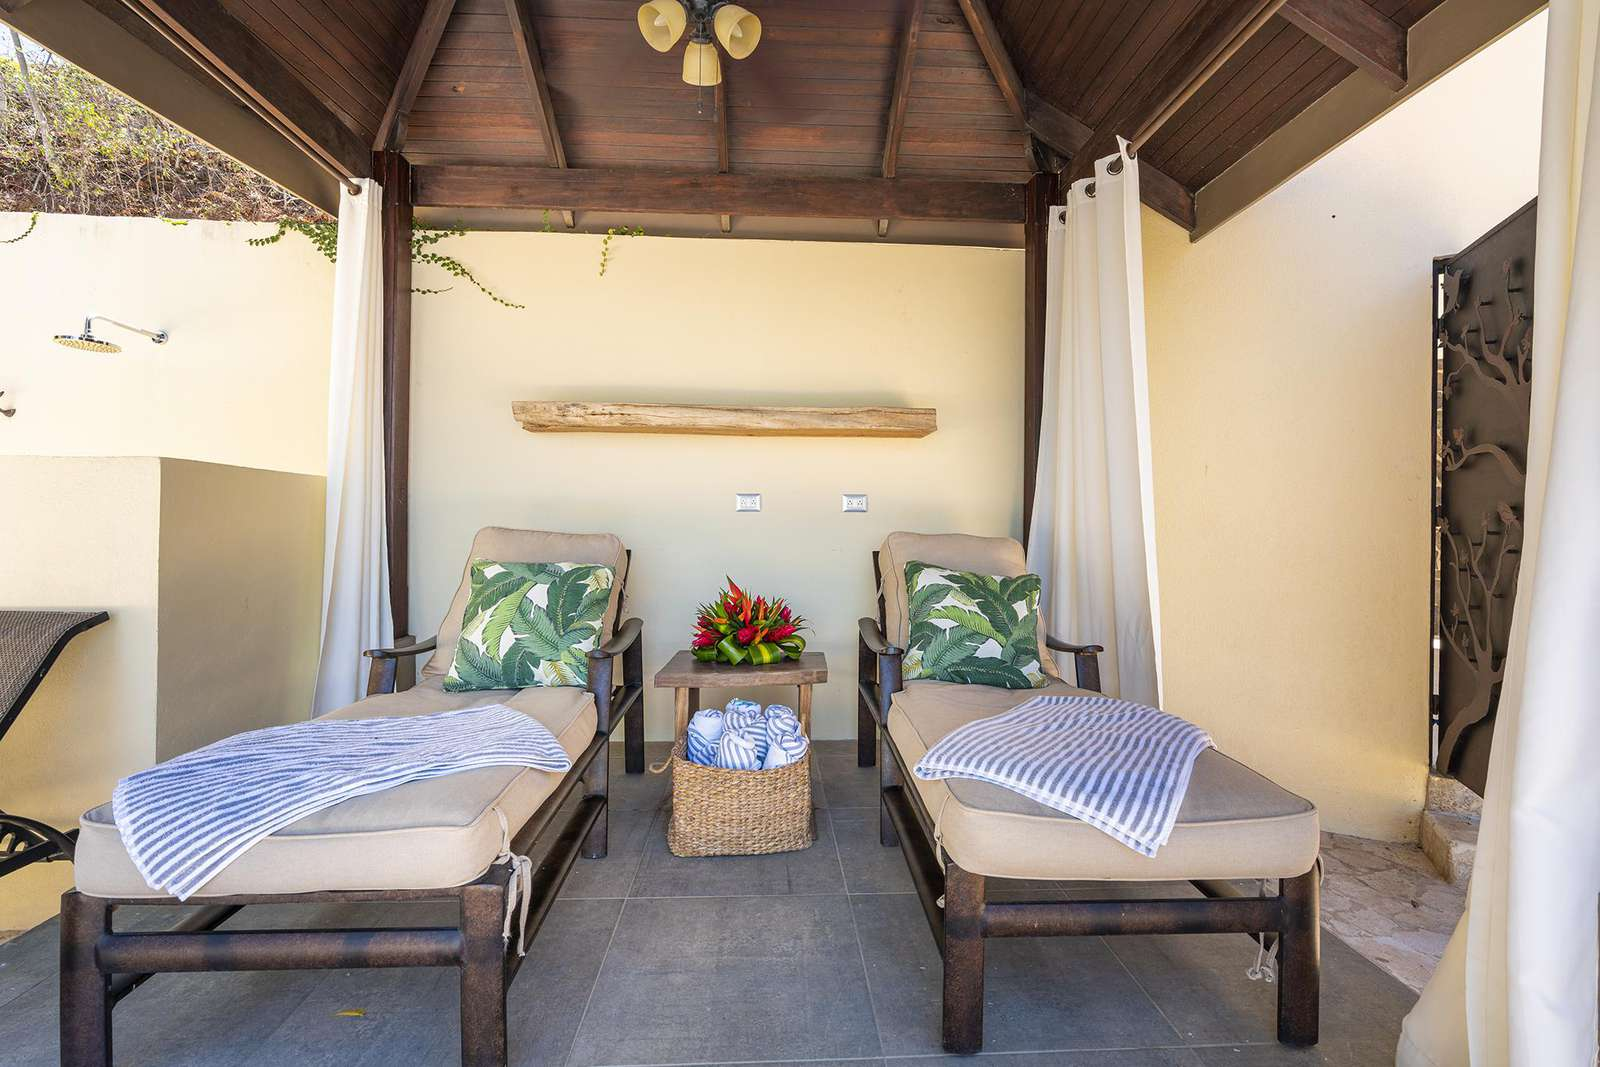 Cabana area with lounge chairs, poolside